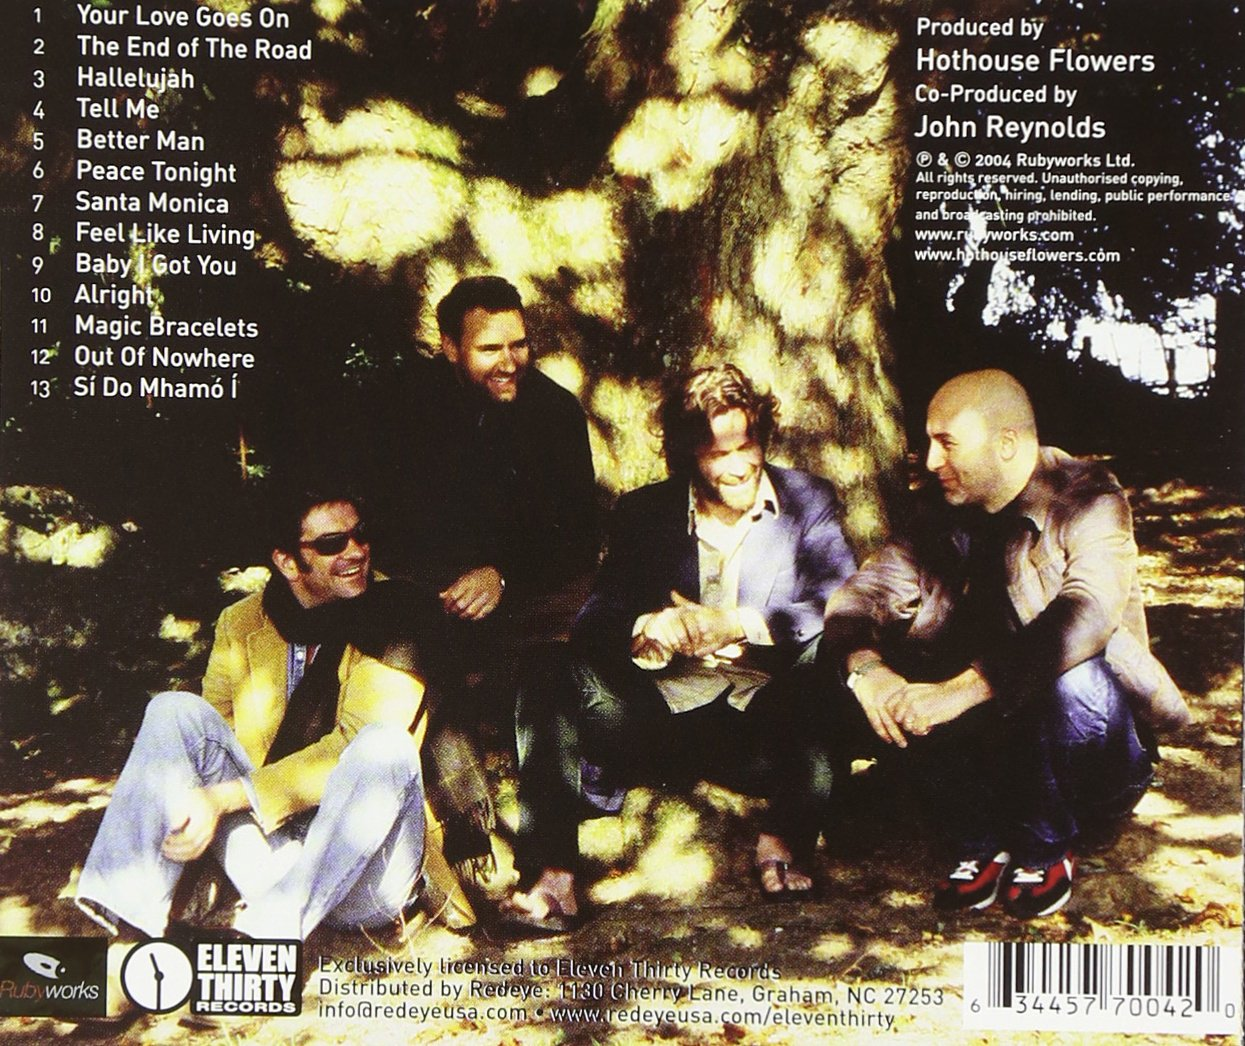 Hothouse Flowers Into Your Heart Amazon Music